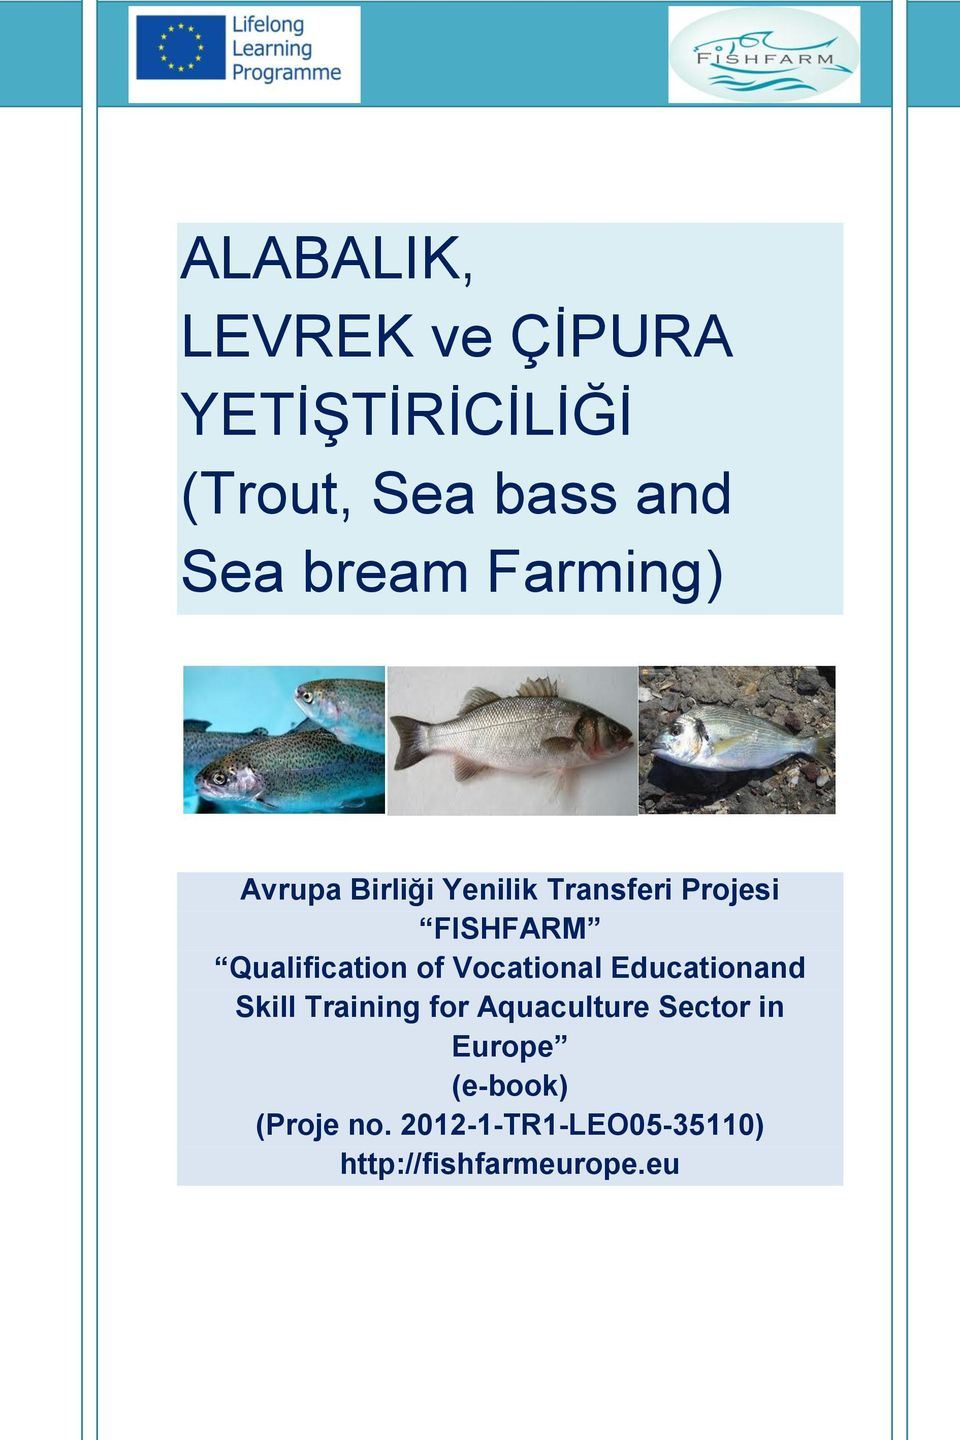 Qualification of Vocational Educationand Skill Training for Aquaculture